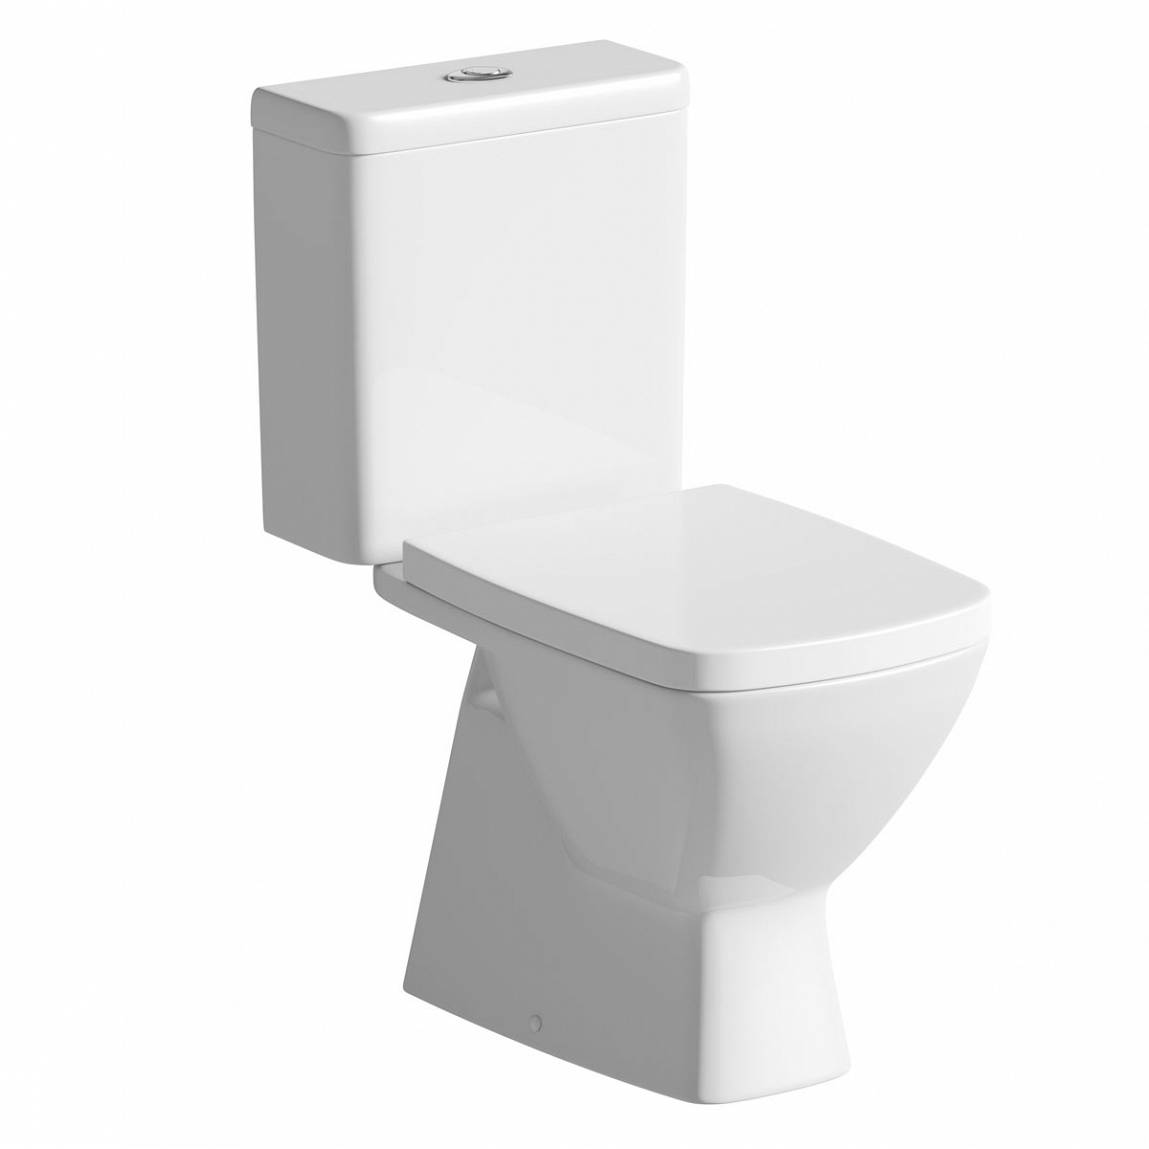 Image of Verso Close Coupled Toilet inc. Seat